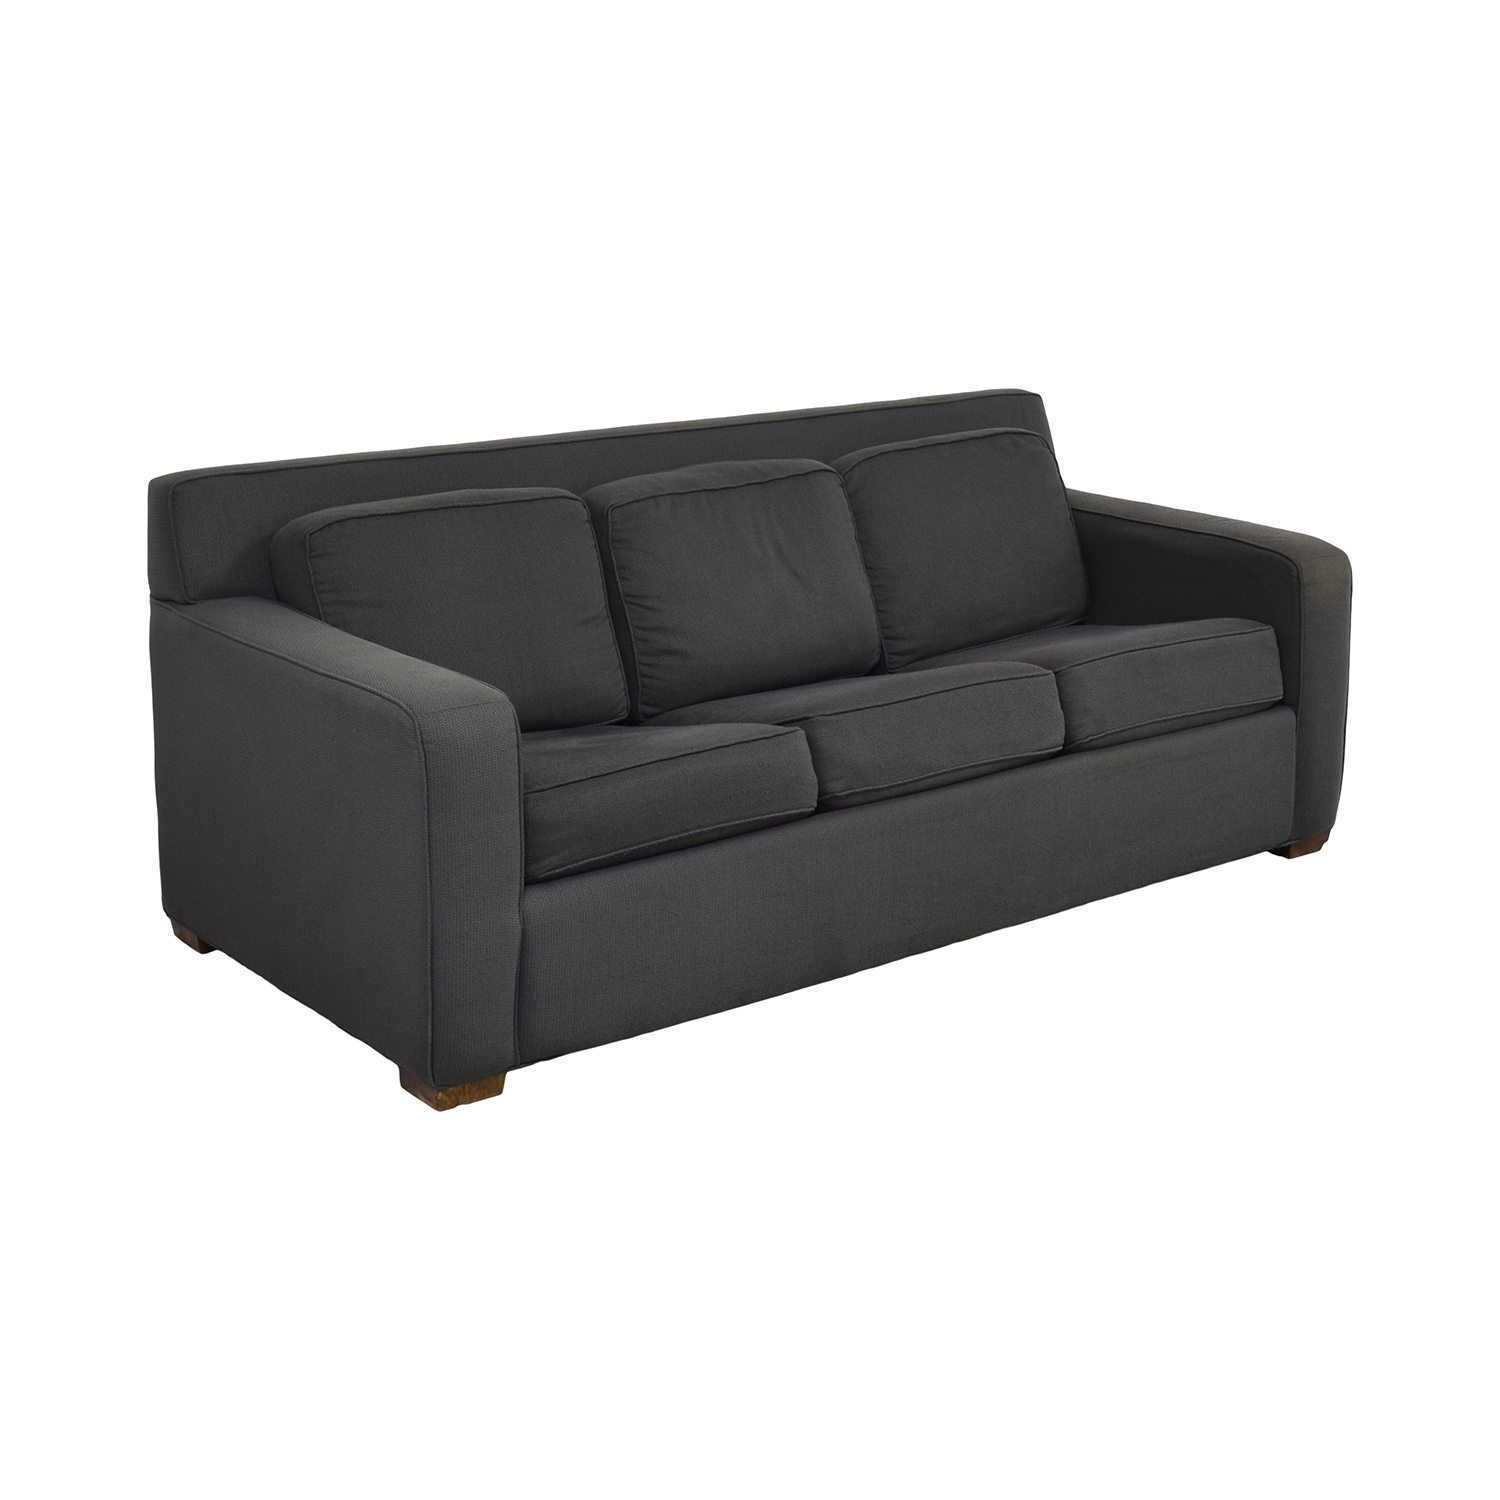 Younger Furniture Sleeper Sofa / Sofa Beds